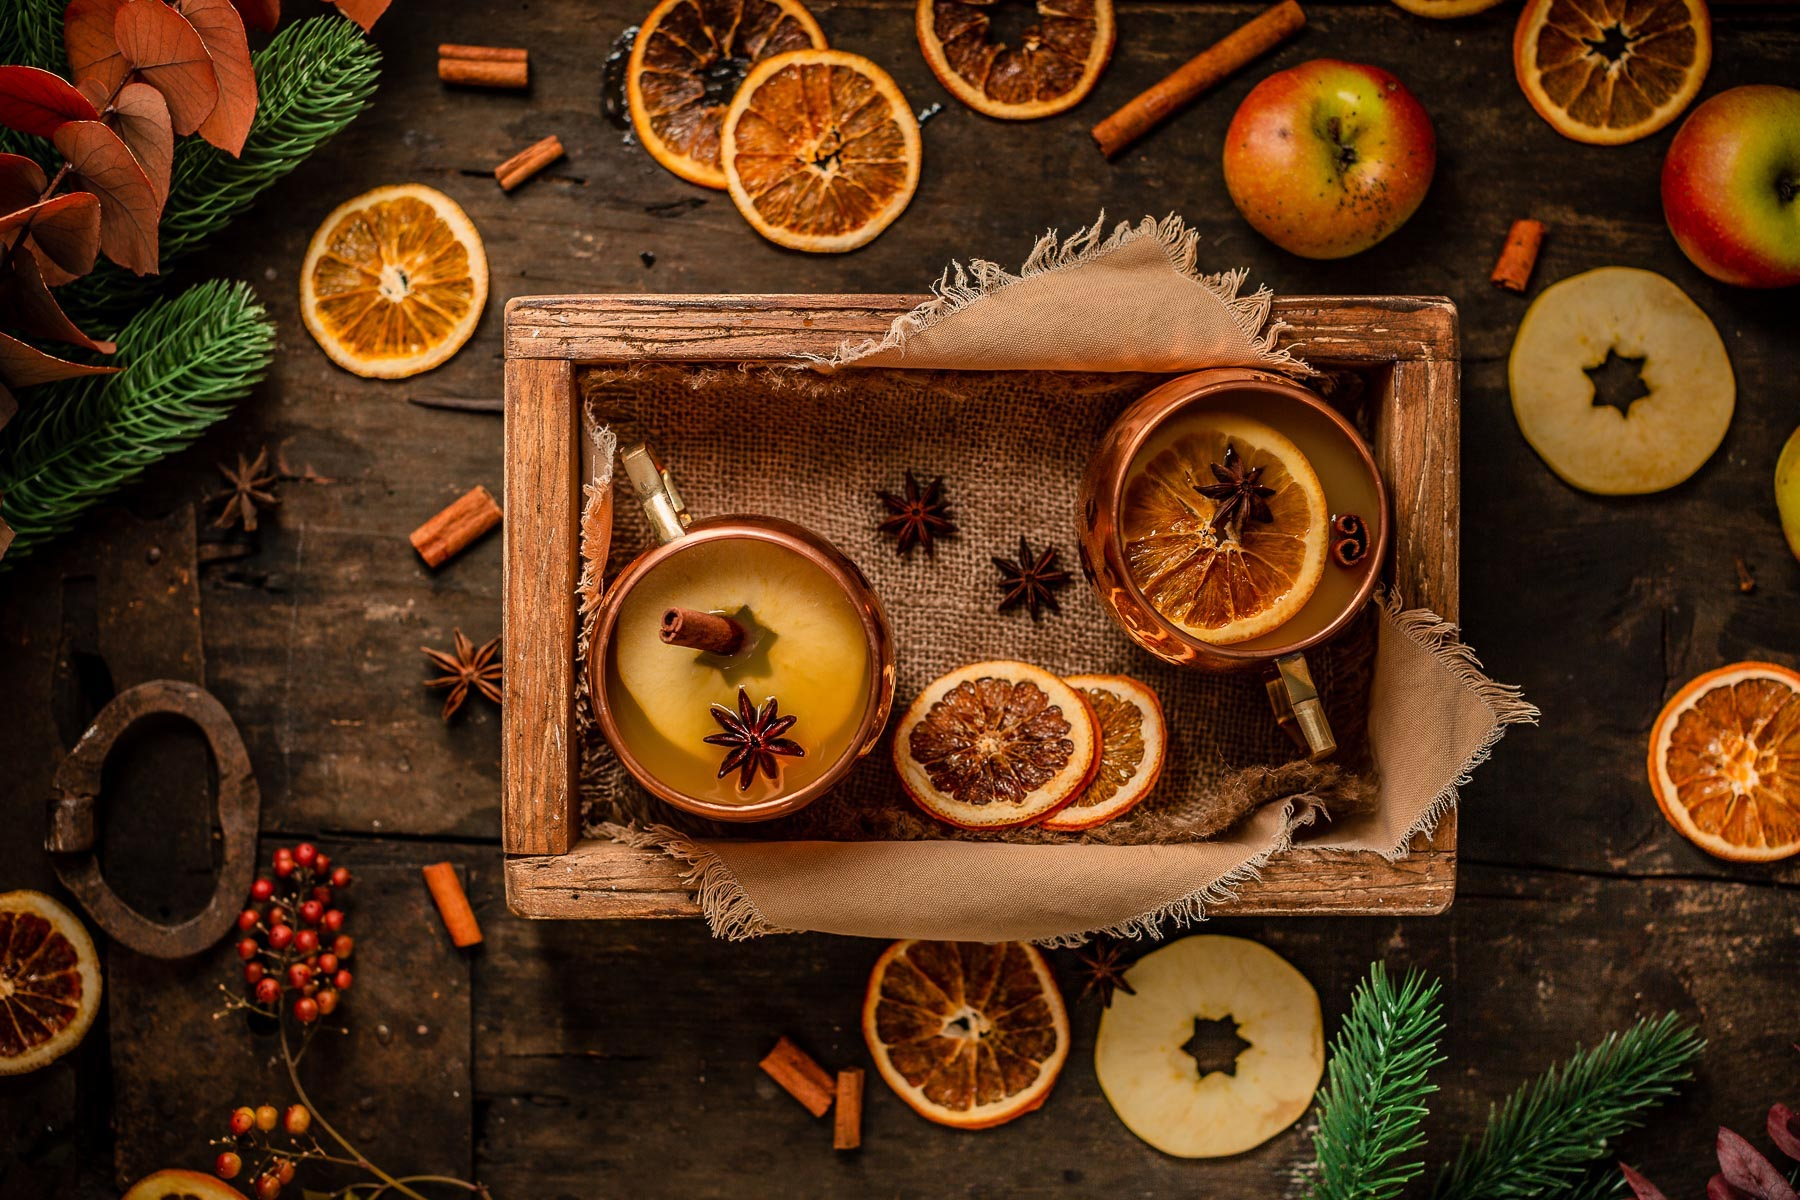 Ricetta Brulè di mele fatto in casa analcolico sano Apfelglühwein Apple mulled wine recipe #healthy Natale